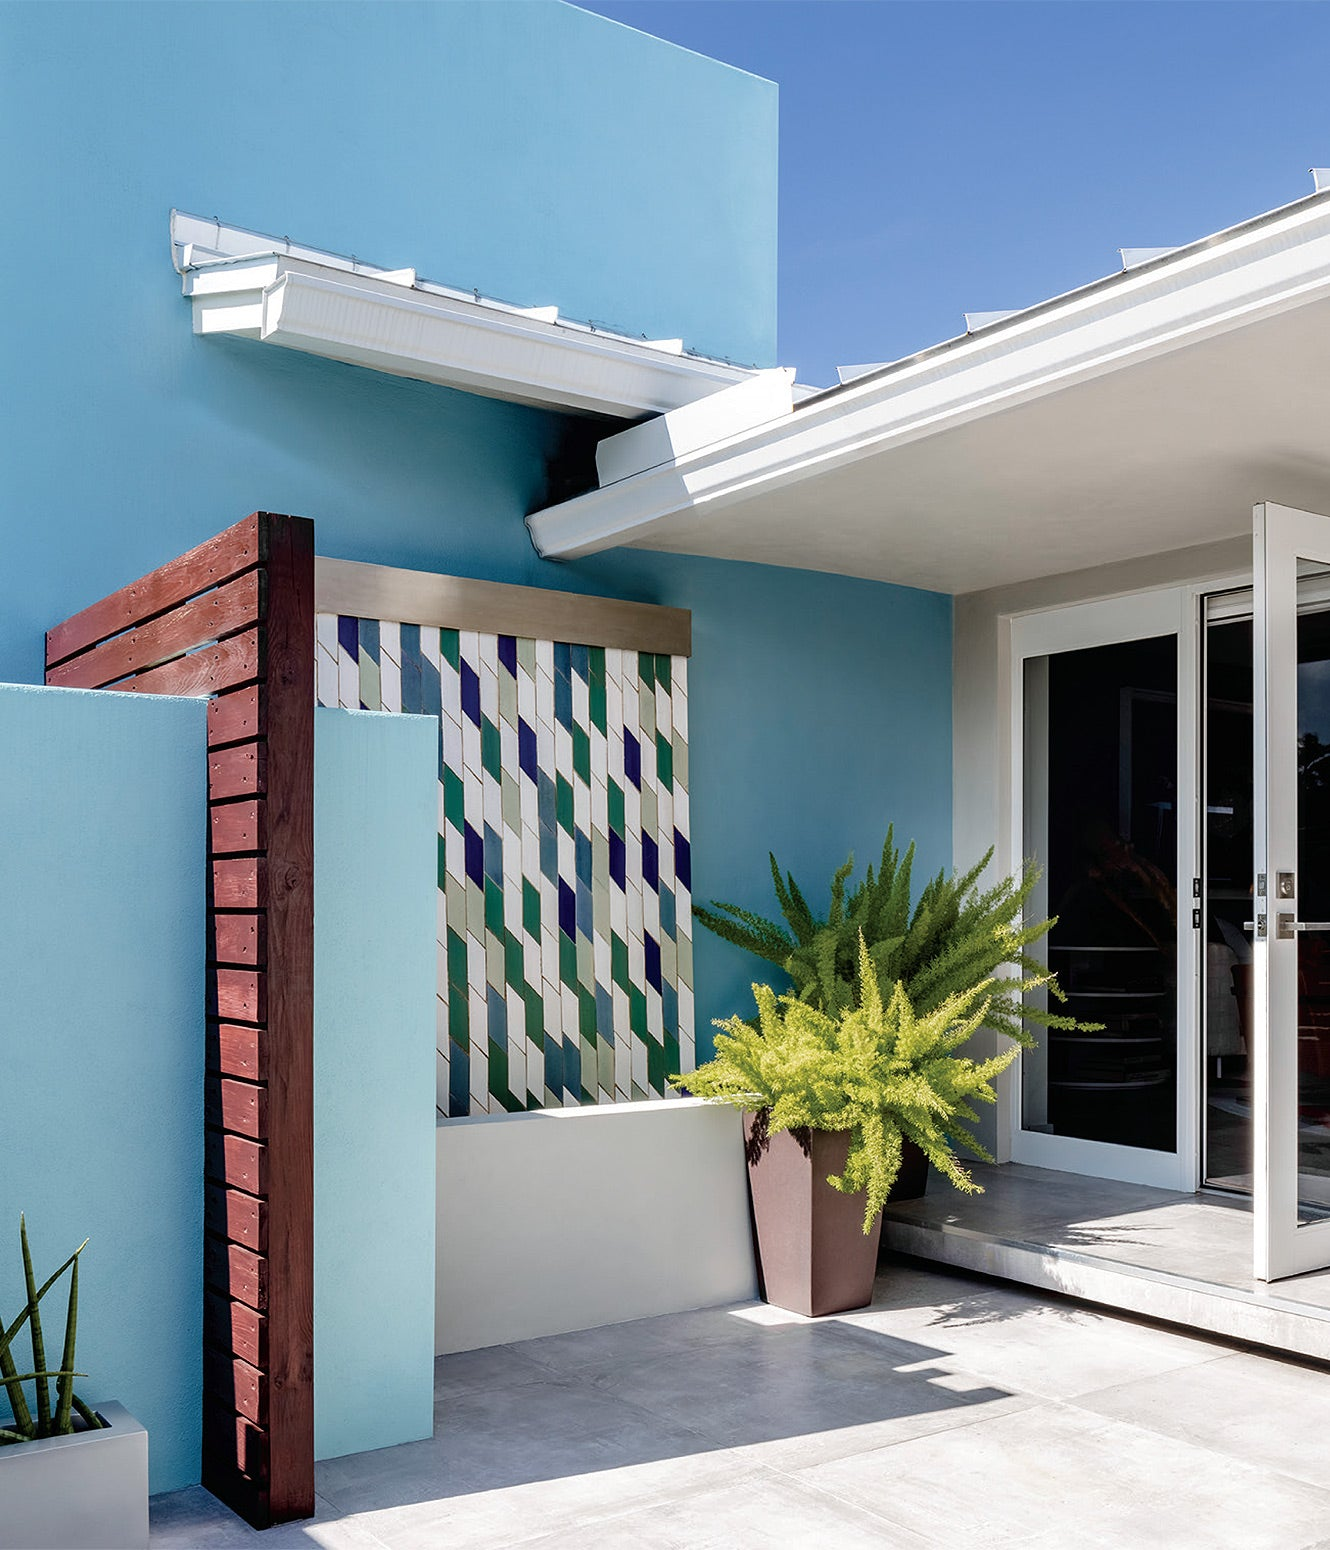 Blue outdoor space with decorative cement tiles/Photographer: Kris Tamburello/Designer Anthony Baratta hewed to a blue color scheme in an indoor-outdoor living space that reflects the sky above this Fort Lauderdale residence.